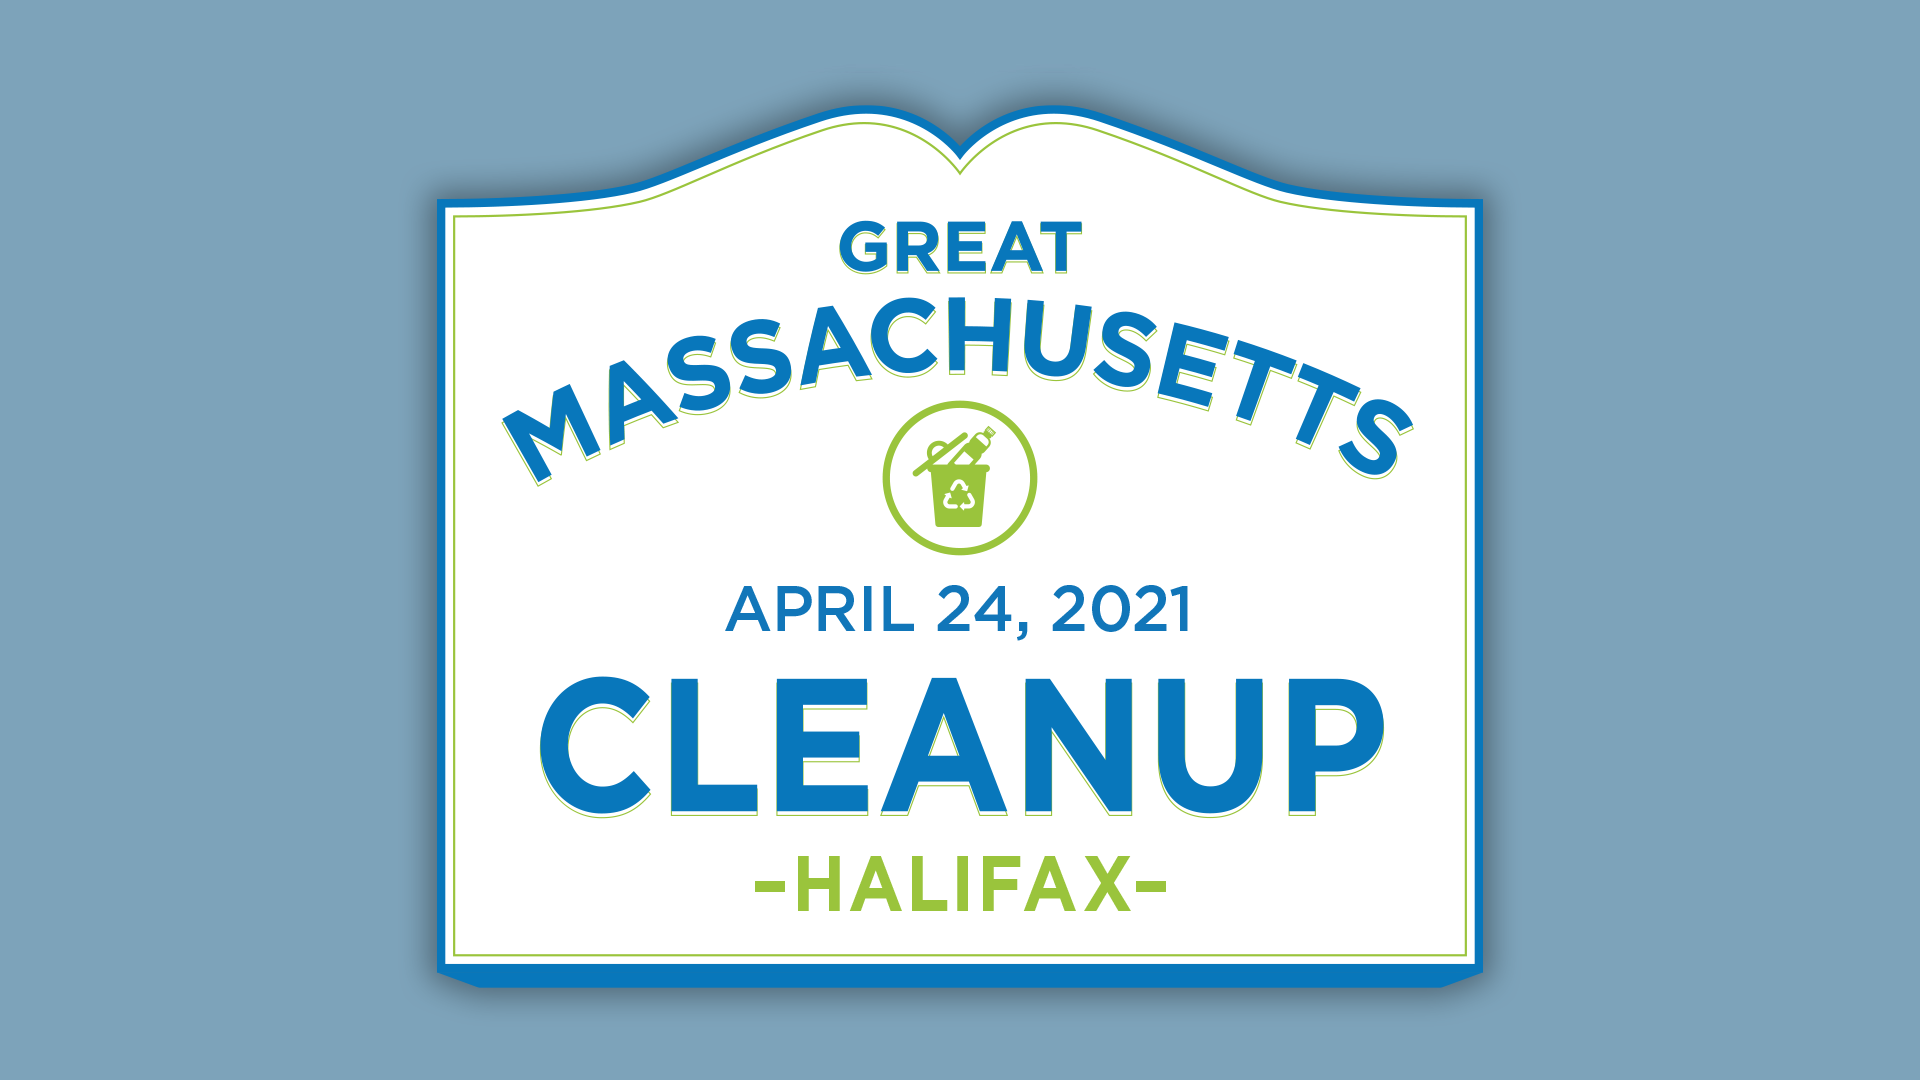 Halifax Spring Cleanup Day